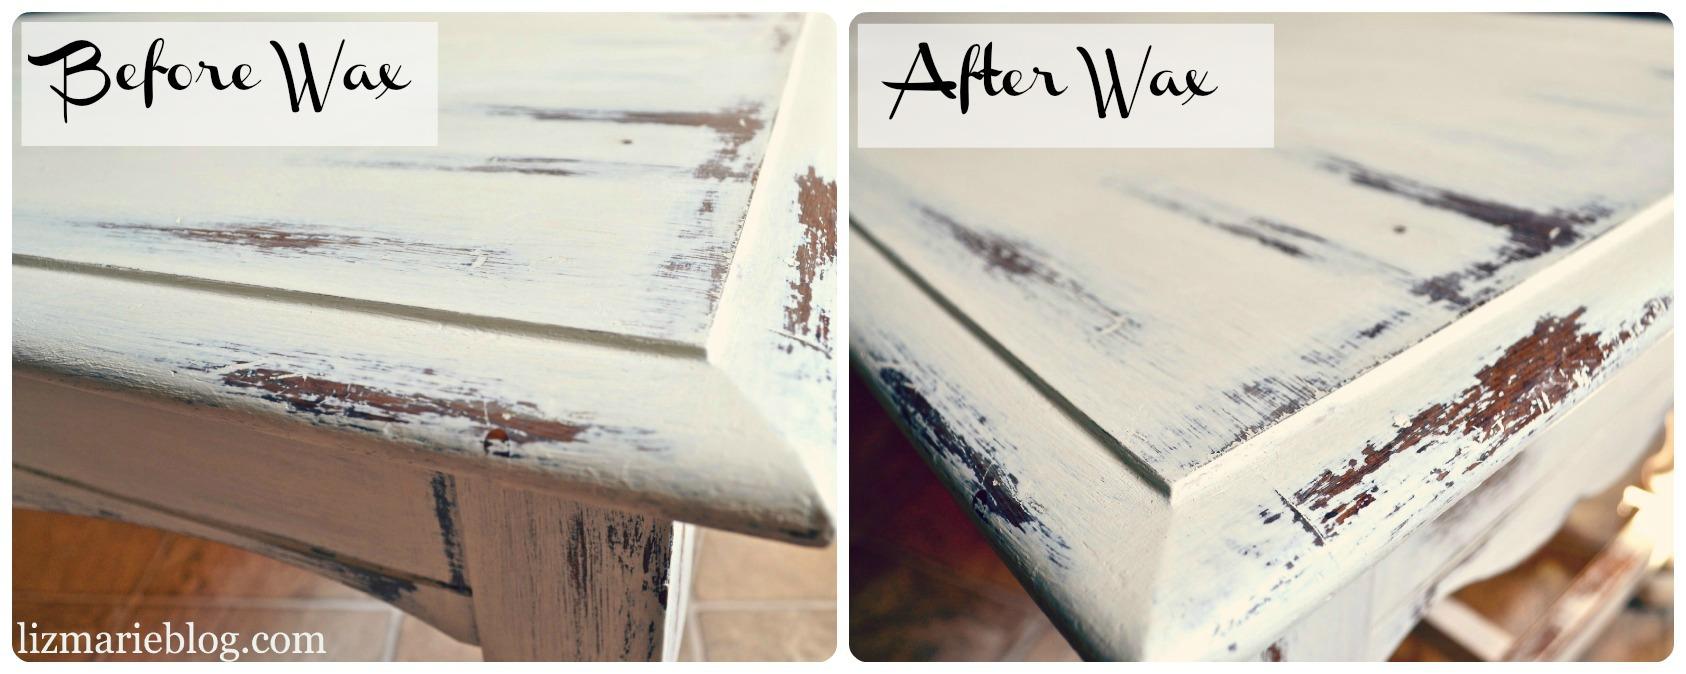 How To Wax Furniture - Liz Marie Blog